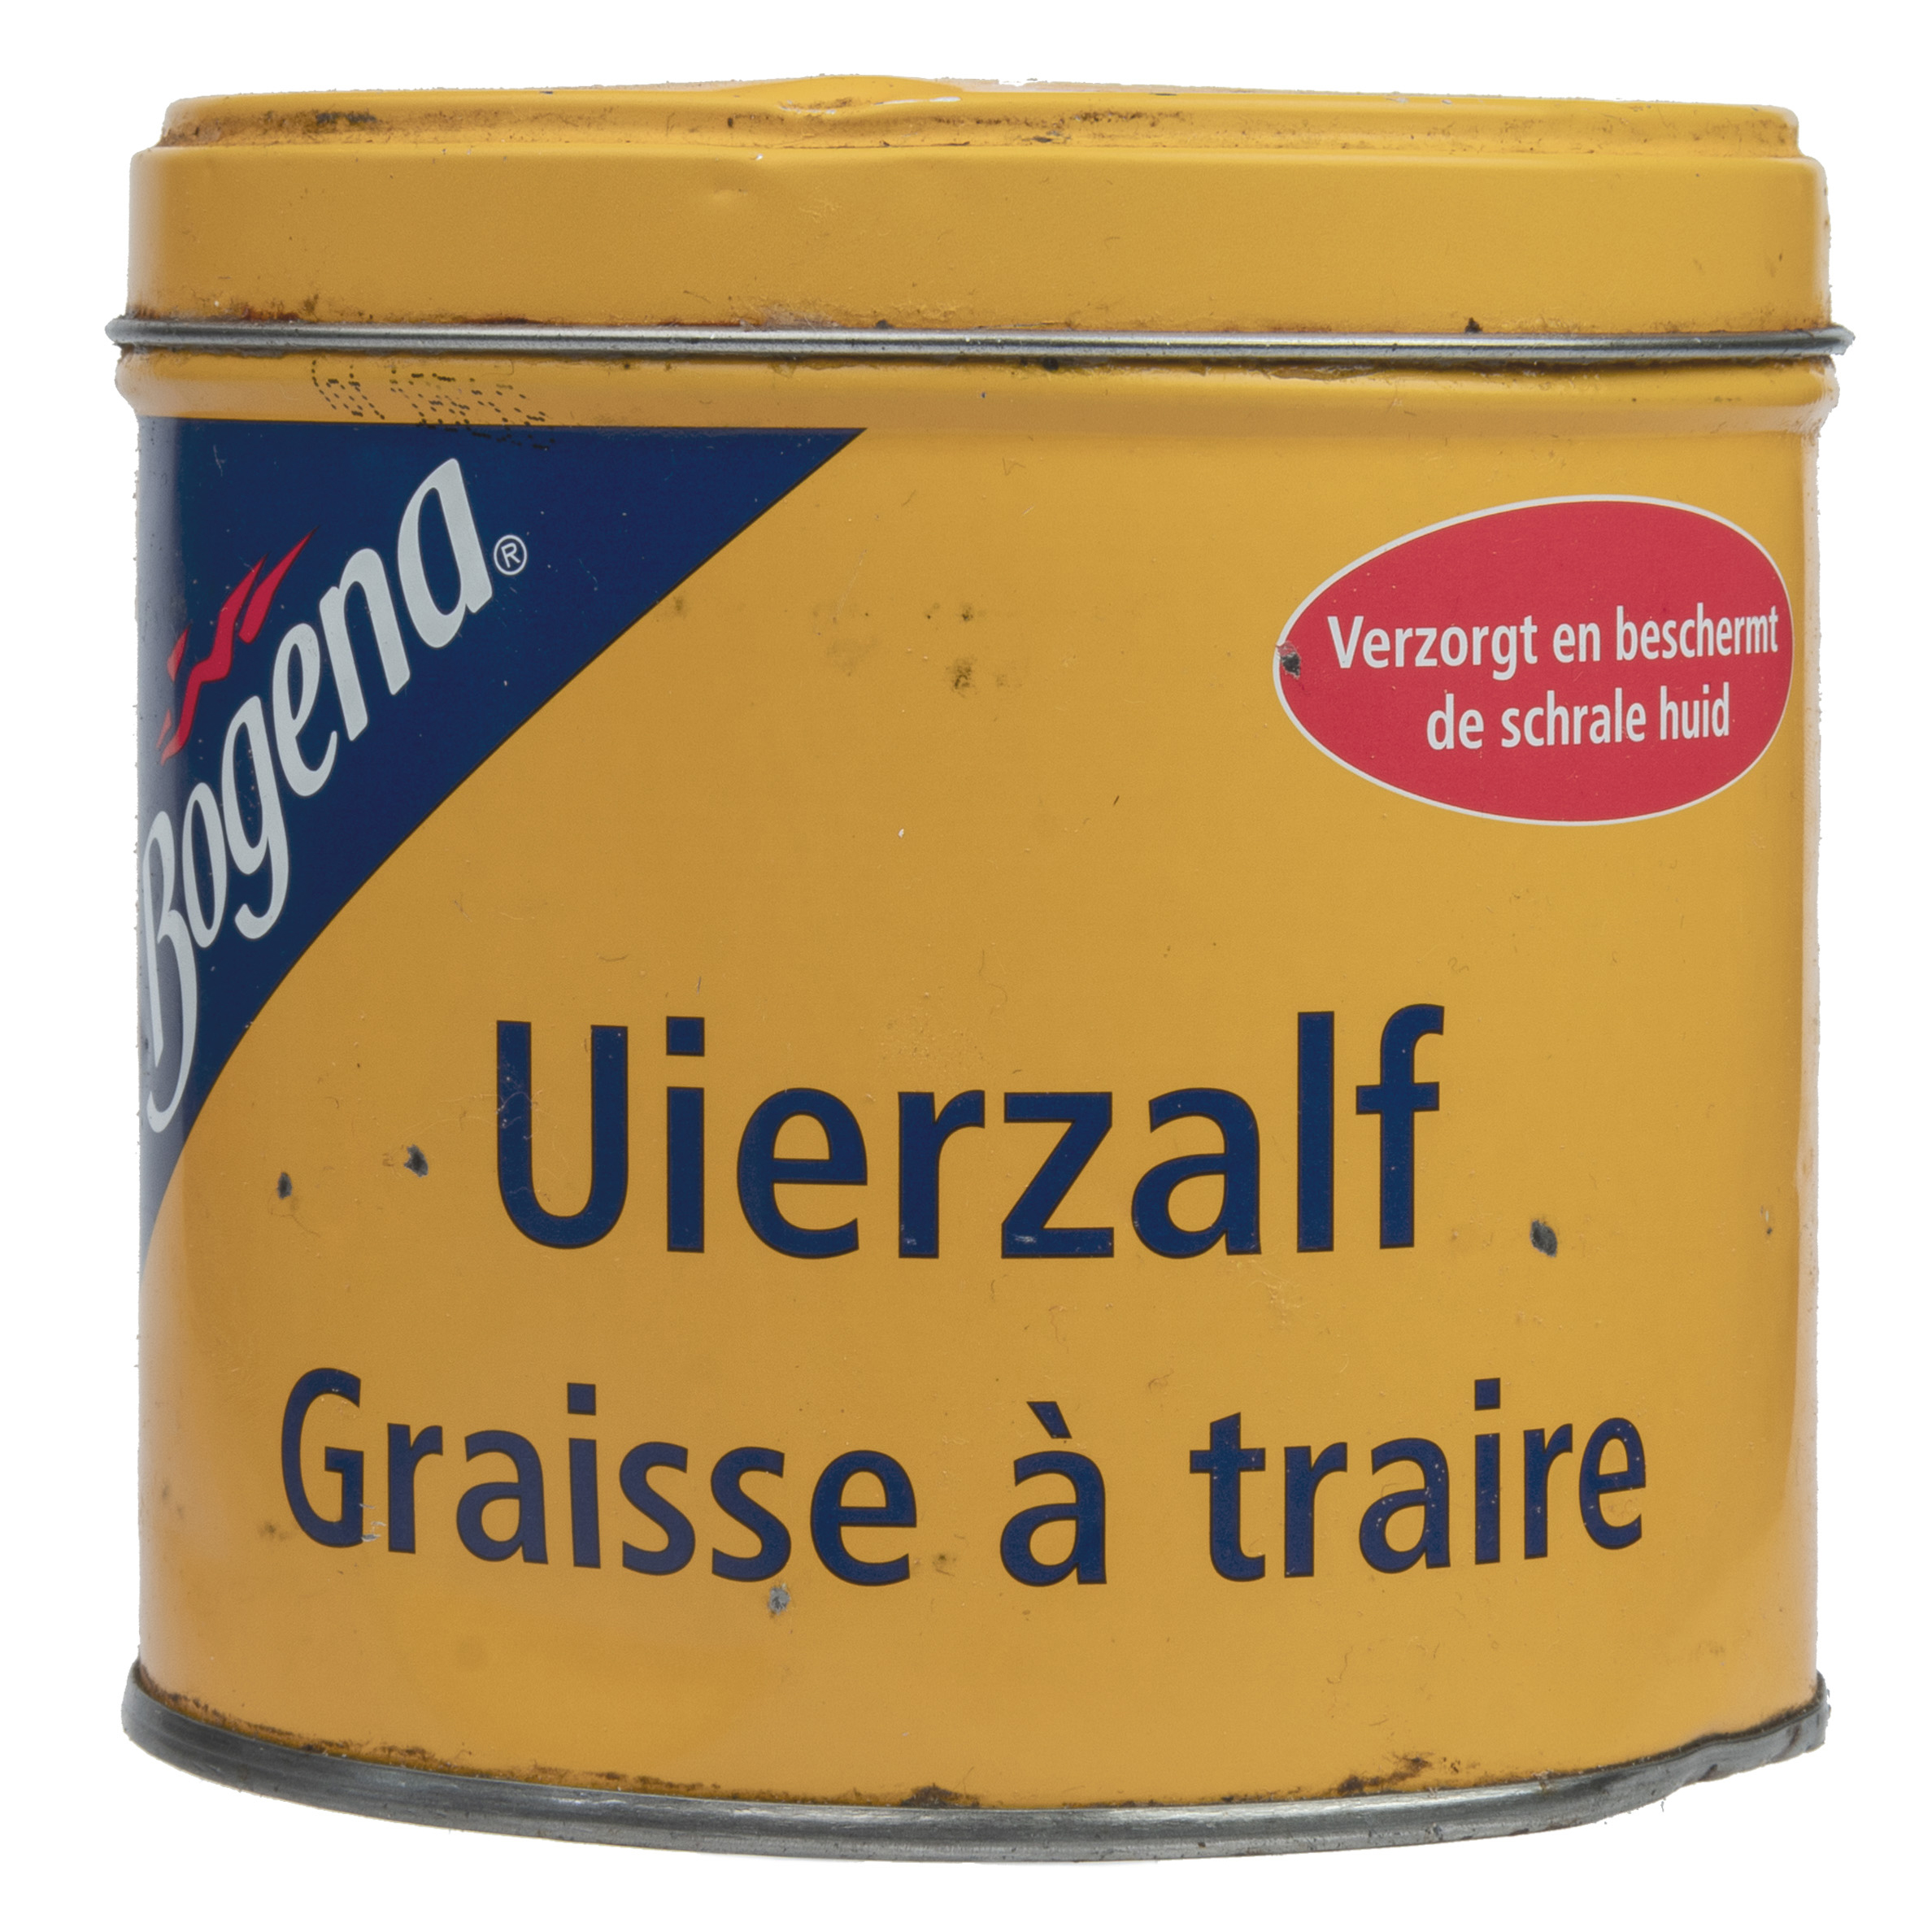 - Udder creamAn ointment used for keeping the teats of dairy cows in good condition.